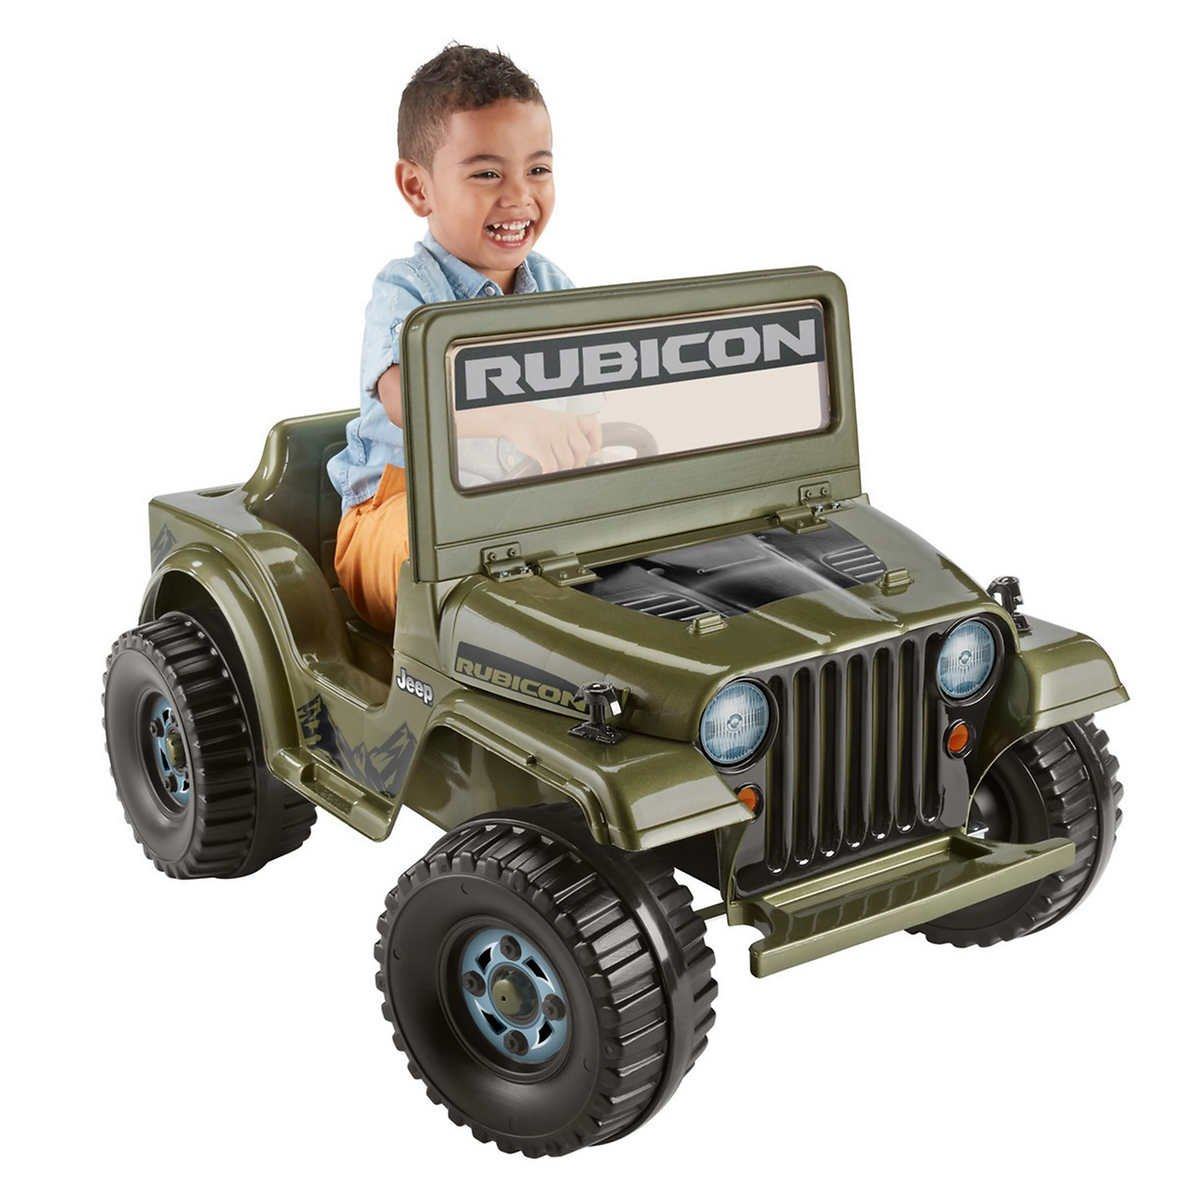 Power Wheels Jeep Rubicon Wrangler 6 V ride-on、機能Pretendラジオwithクリックノブ& Gear Shifter」、「Looks Just Like the Real Thing 。   B07D4PSPPB